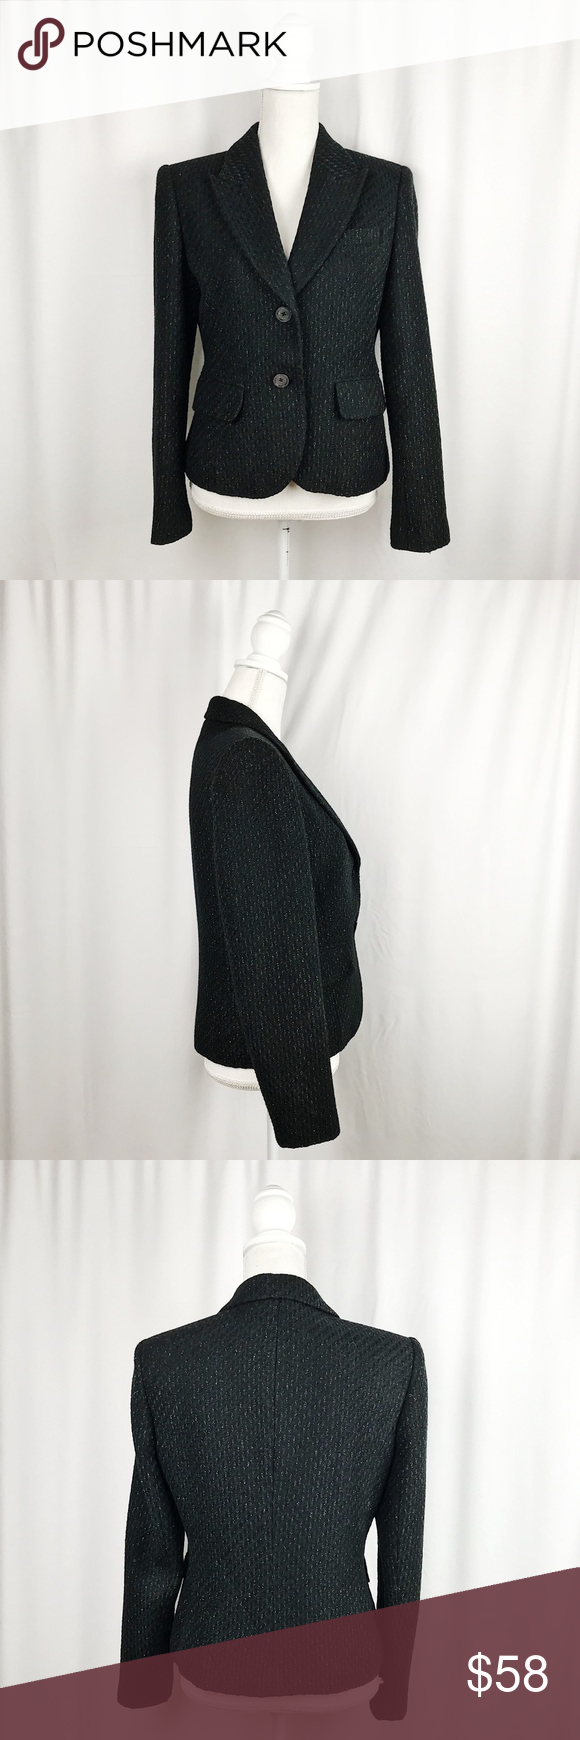 """MICHAEL by Michael Kors Wool Blend Blazer MICHAEL by Michael Kors Wool blend blazer. Black with silver shimmer threaded detail. Excellent pre-loved condition.  Measurements:  Size 10  Pit- 20"""" Arms- 24"""" Length- 23""""  #0125 MICHAEL Michael Kors Jackets & Coats Blazers"""